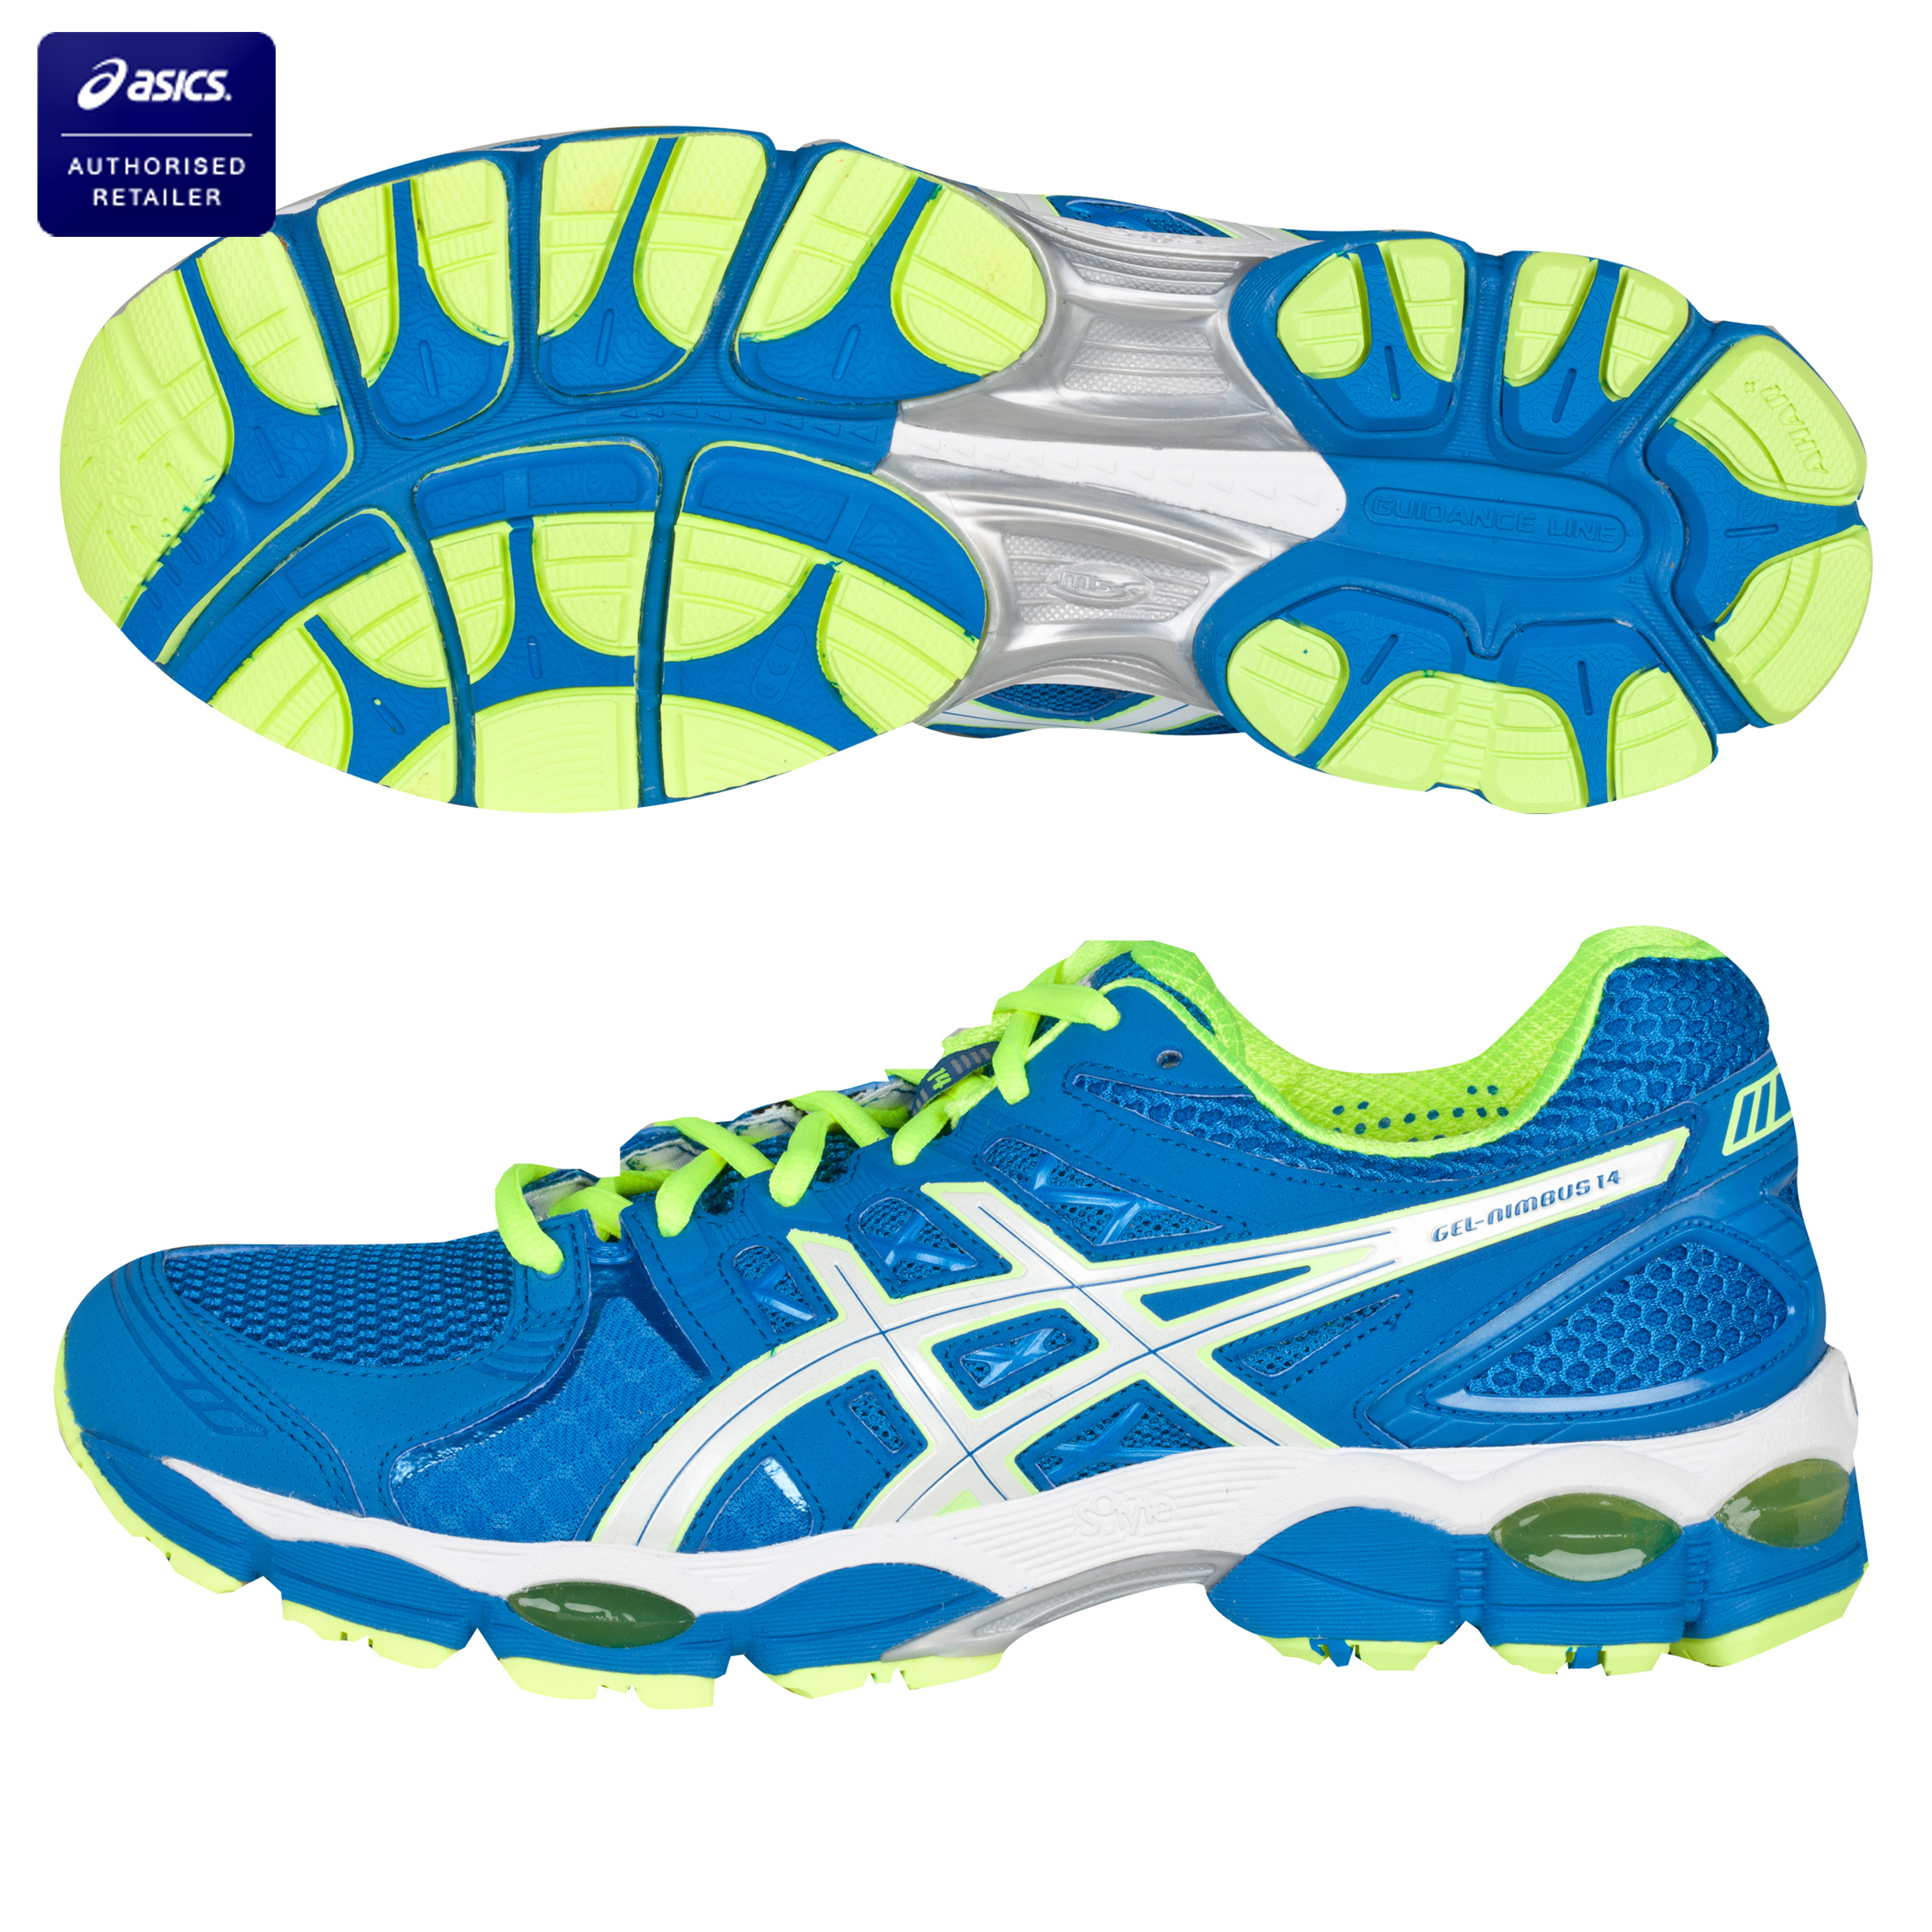 Asics Gel-Nimbus 14 Running Trainers - Blue/Pearl White/Yellow